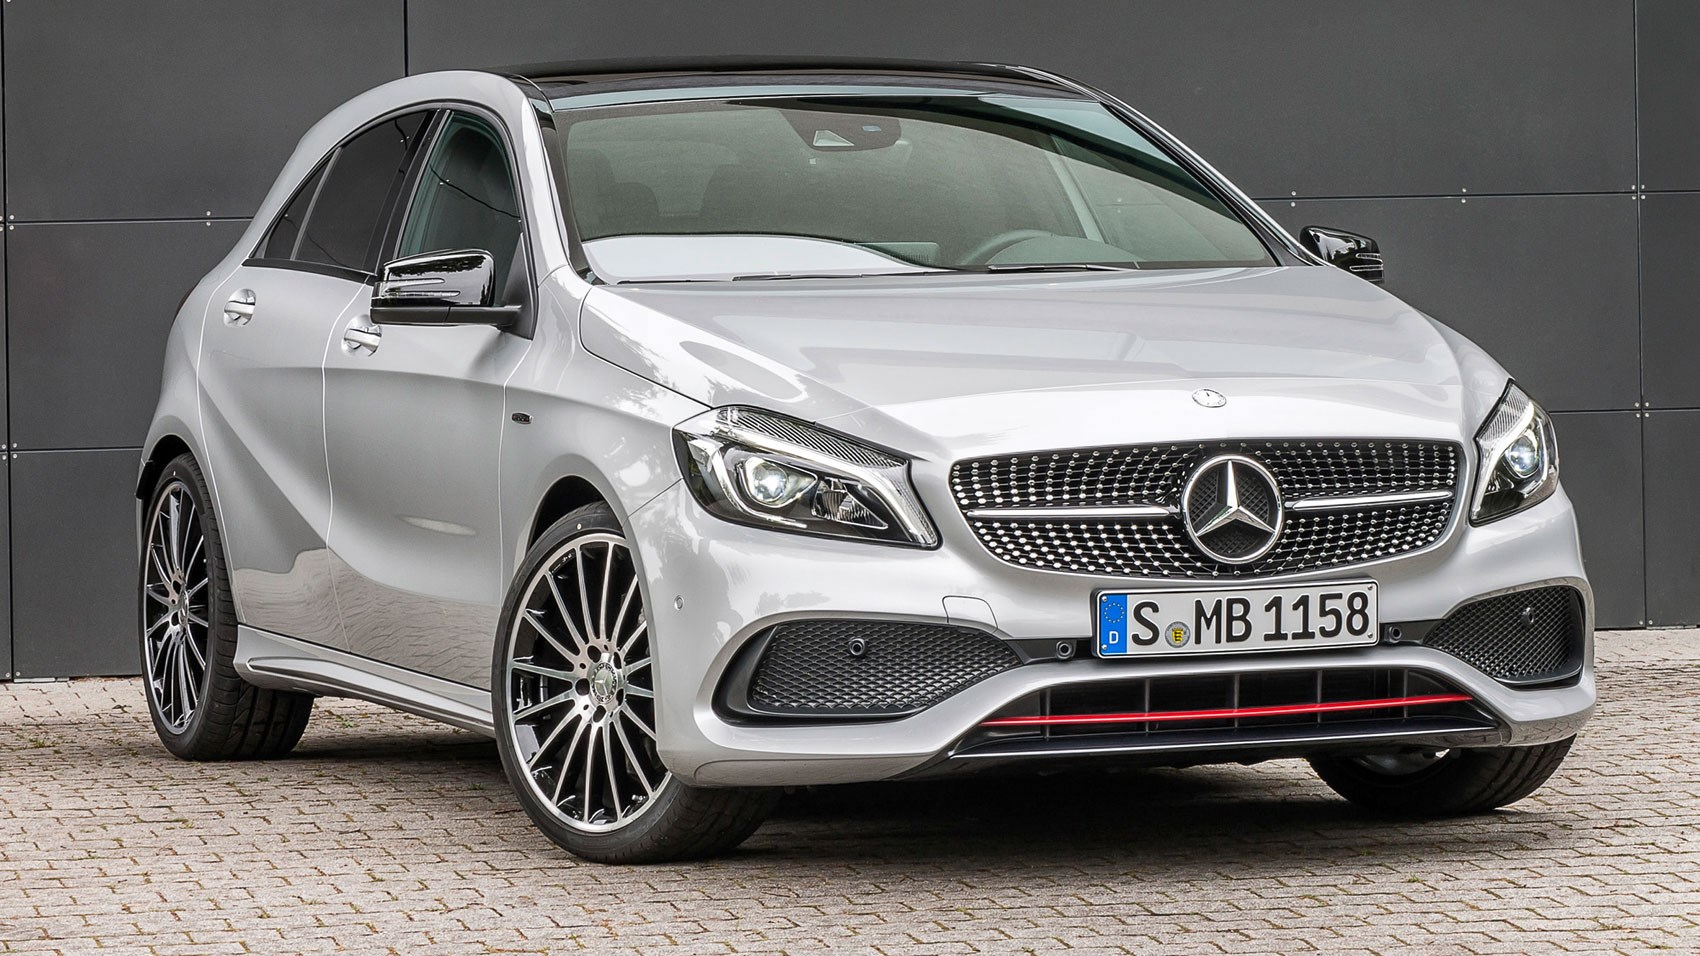 Mercedes Benz Lease Deals 0 Down >> Mercedes-Benz A250 AMG (2015) review | CAR Magazine